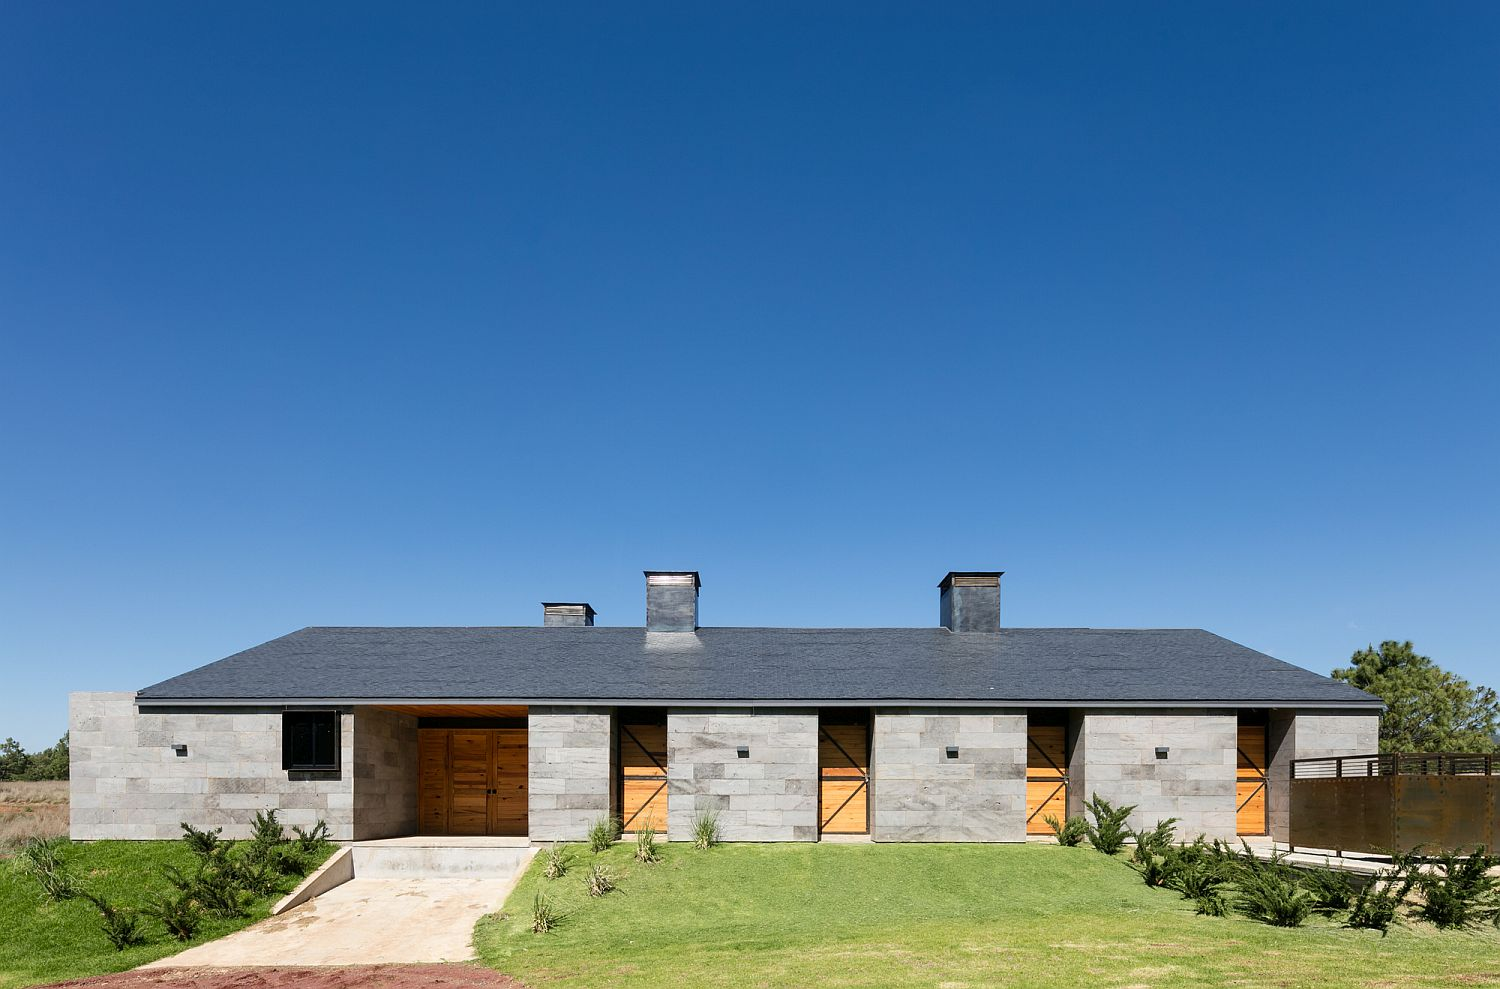 Modern-Mexican-ranch-house-with-a-gray-exterior-in-volcanic-rock